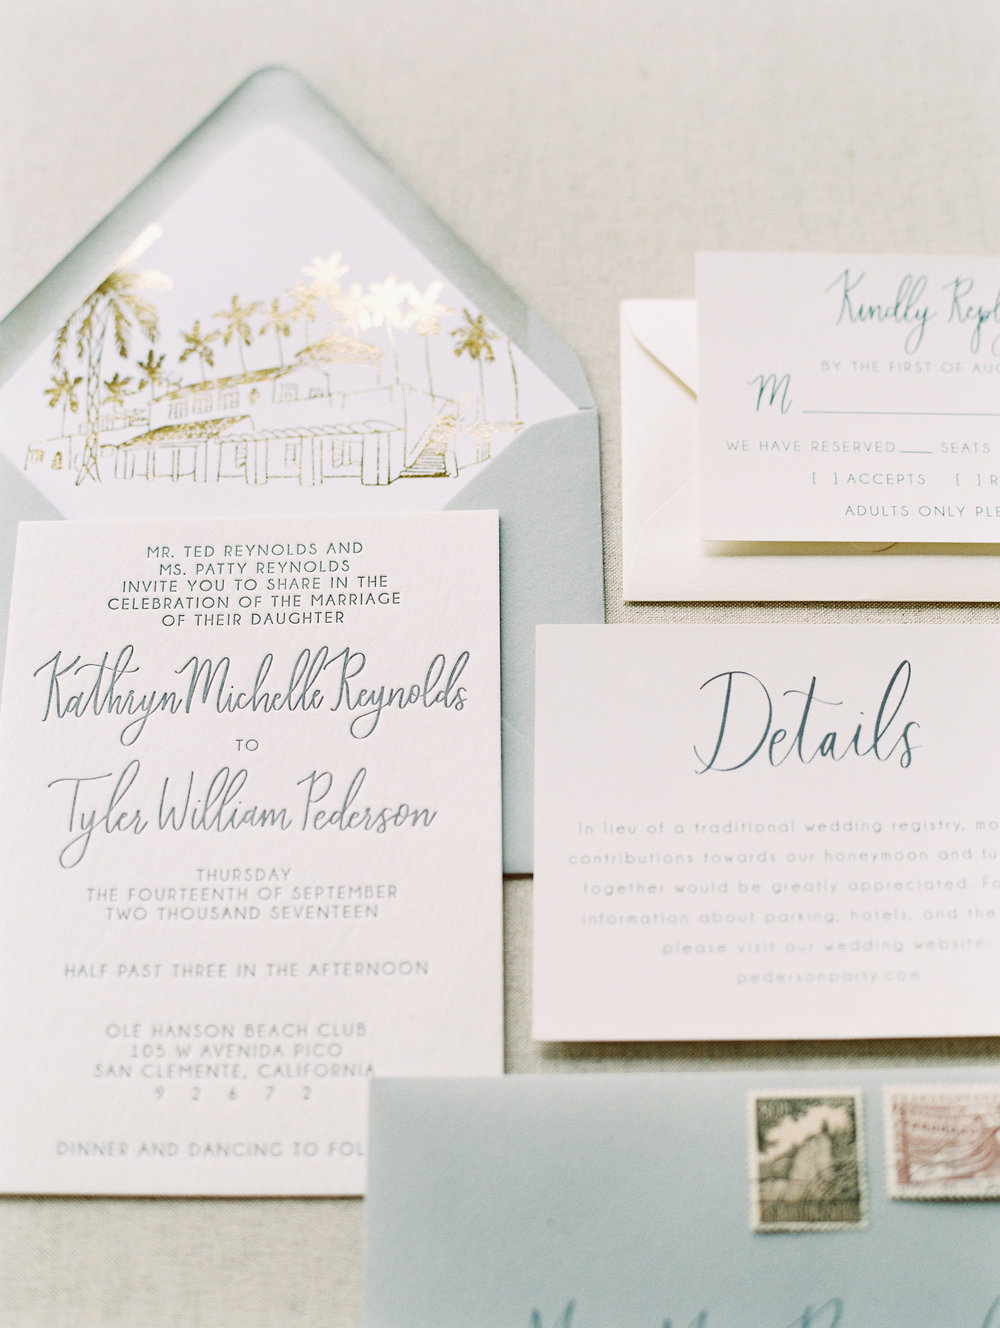 Ole Hanson Beach Club Wedding | Pirouette Paper Custom Invitations, Paper Goods and Signage | Mallory Dawn Photography | www.pirouettepaper.com